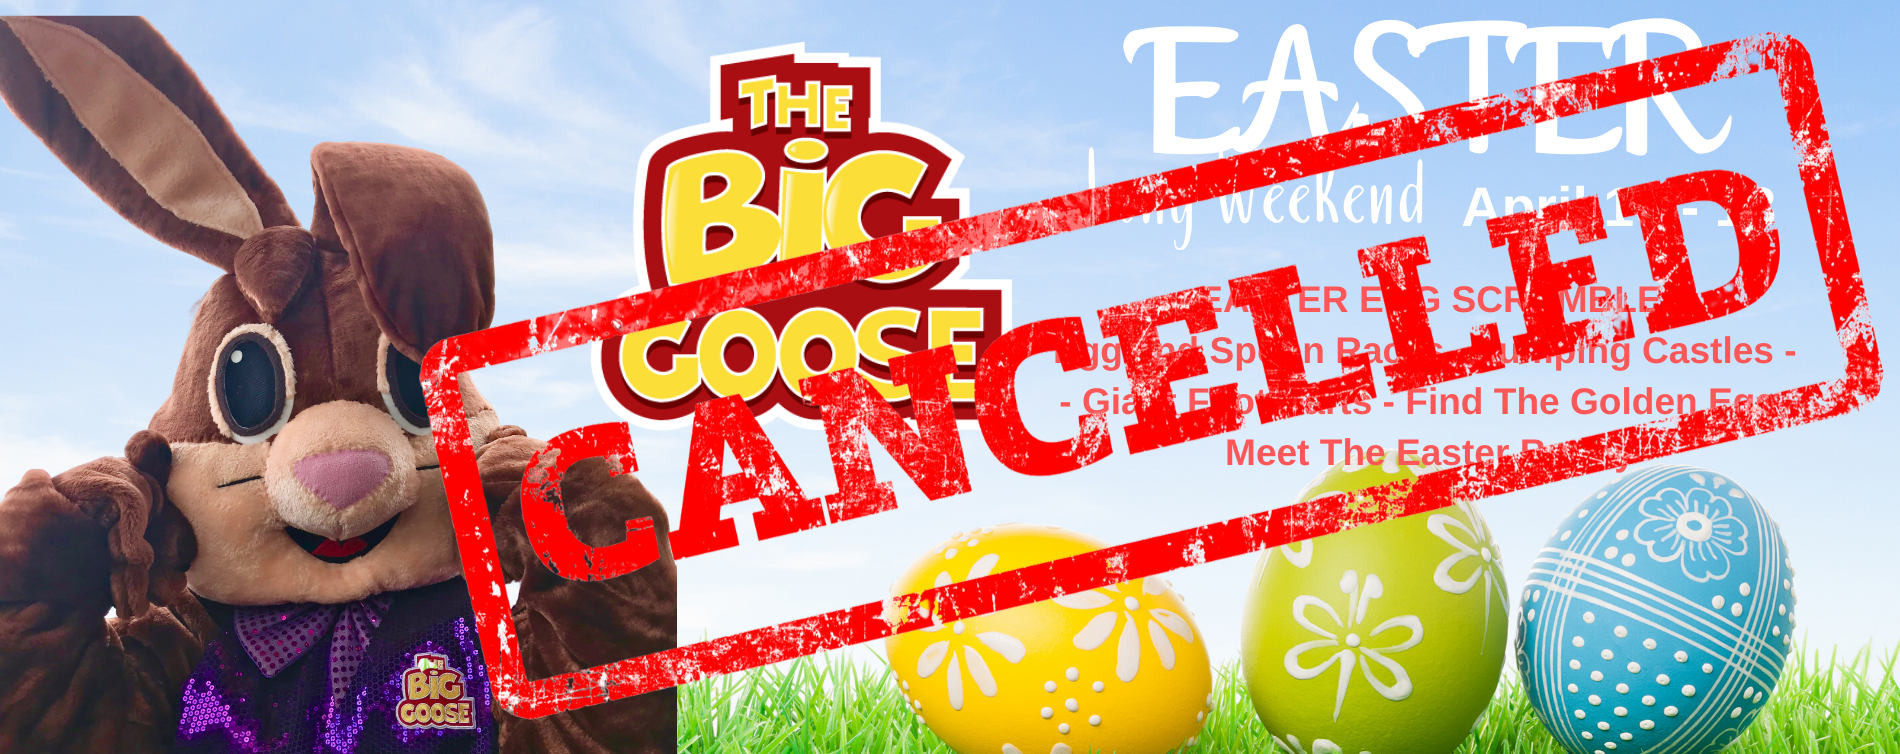 Cancelled of Hoppy Easterbanner